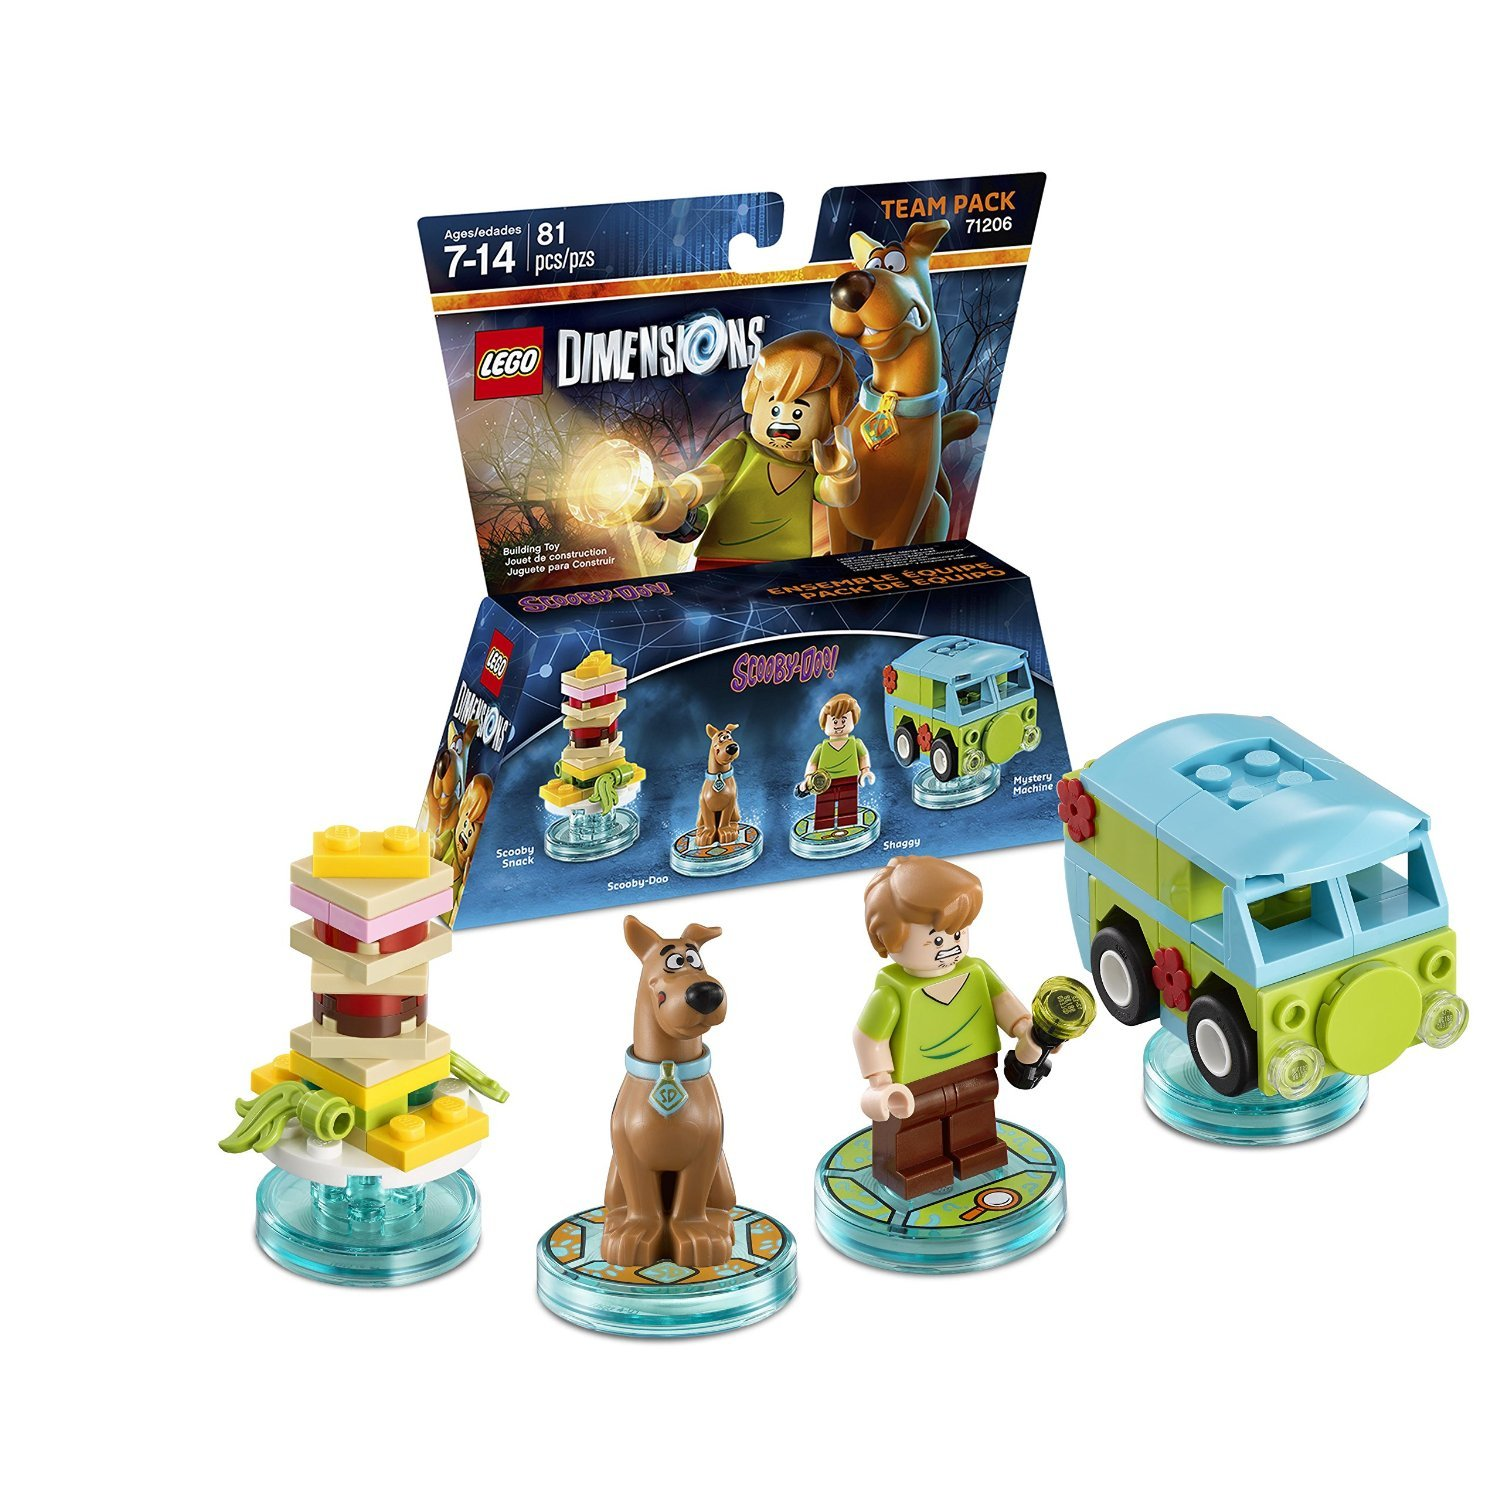 Ninjago Cole & Kai Team Pack + Adventure Time Finn The Human Level Pack + Scooby Doo Team Pack - Lego Dimensions (Non Machine Specific) by WB Lego (Image #4)